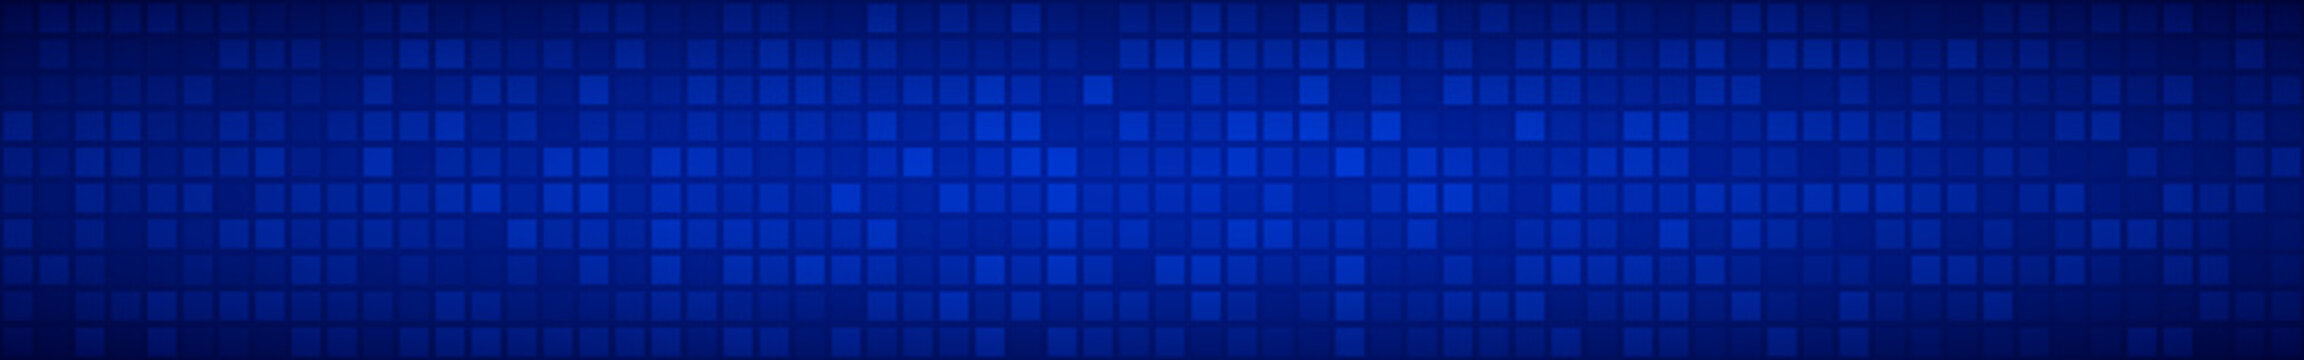 Abstract horizontal banner or background of small squares or pixels in blue colors.